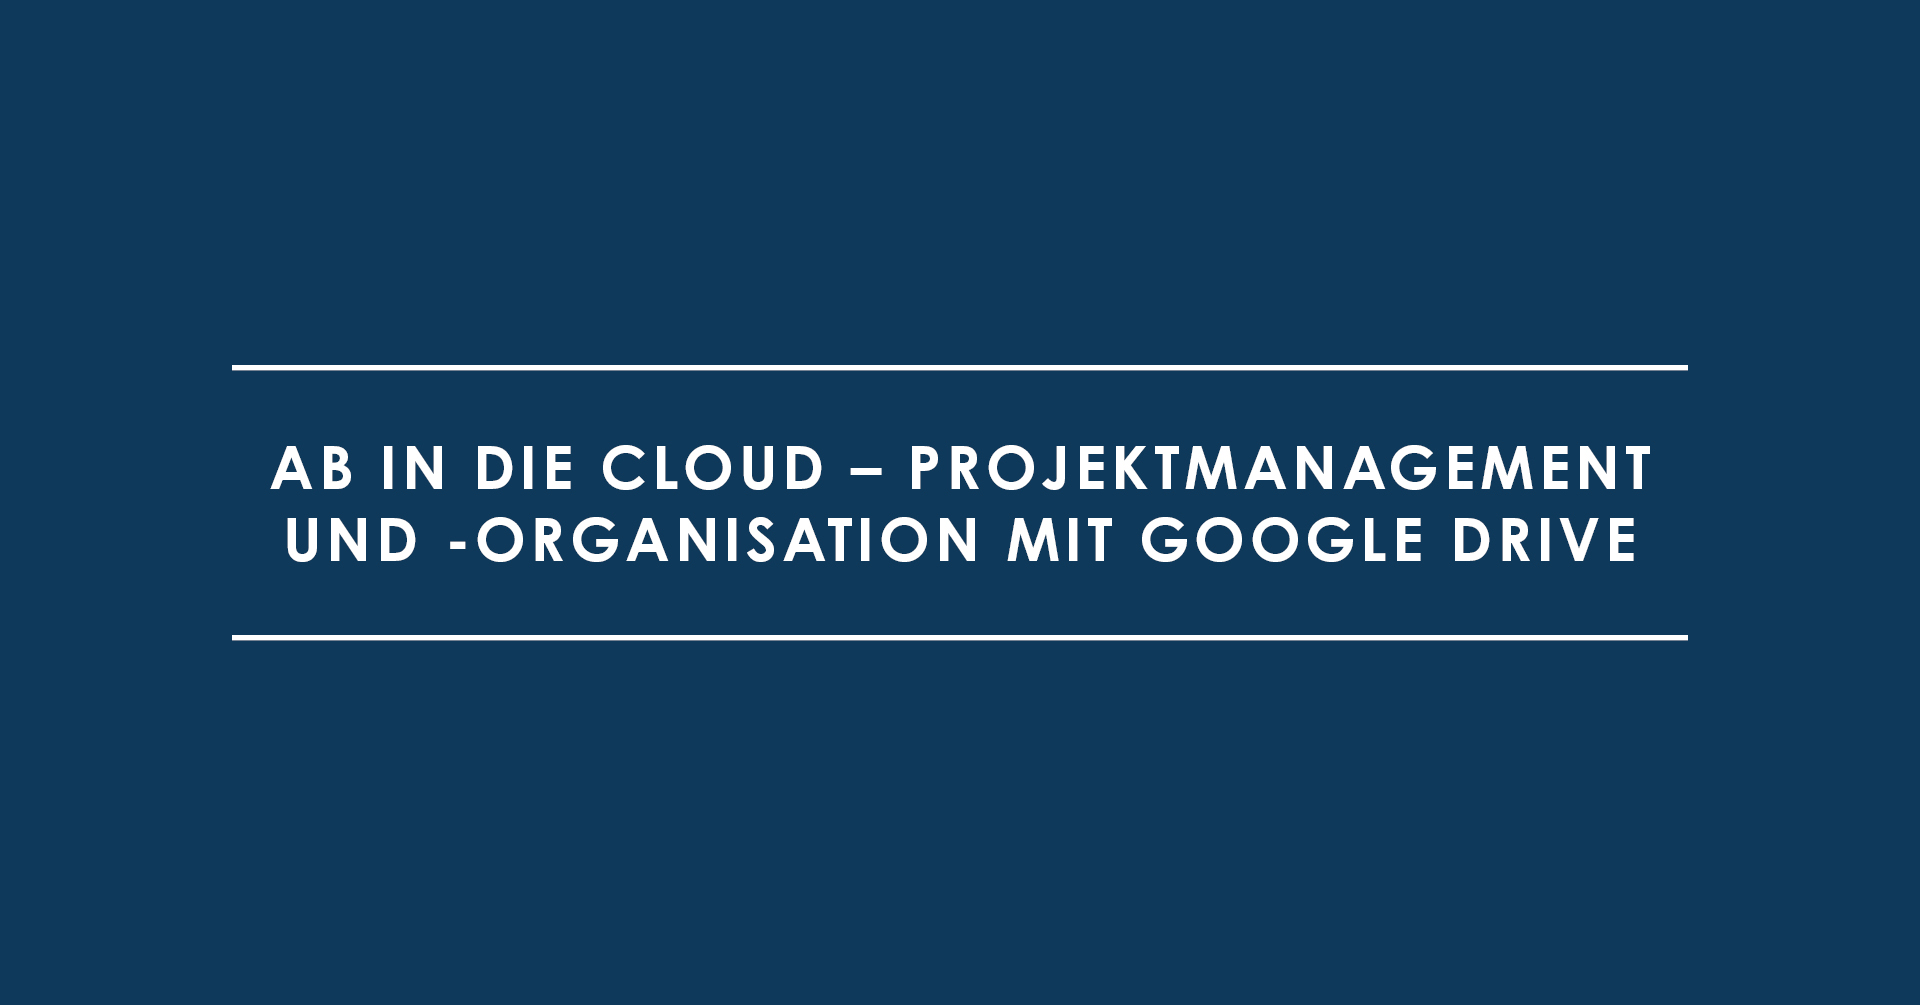 Ab in die Cloud – Projektmanagement und -organisation mit Google Drive